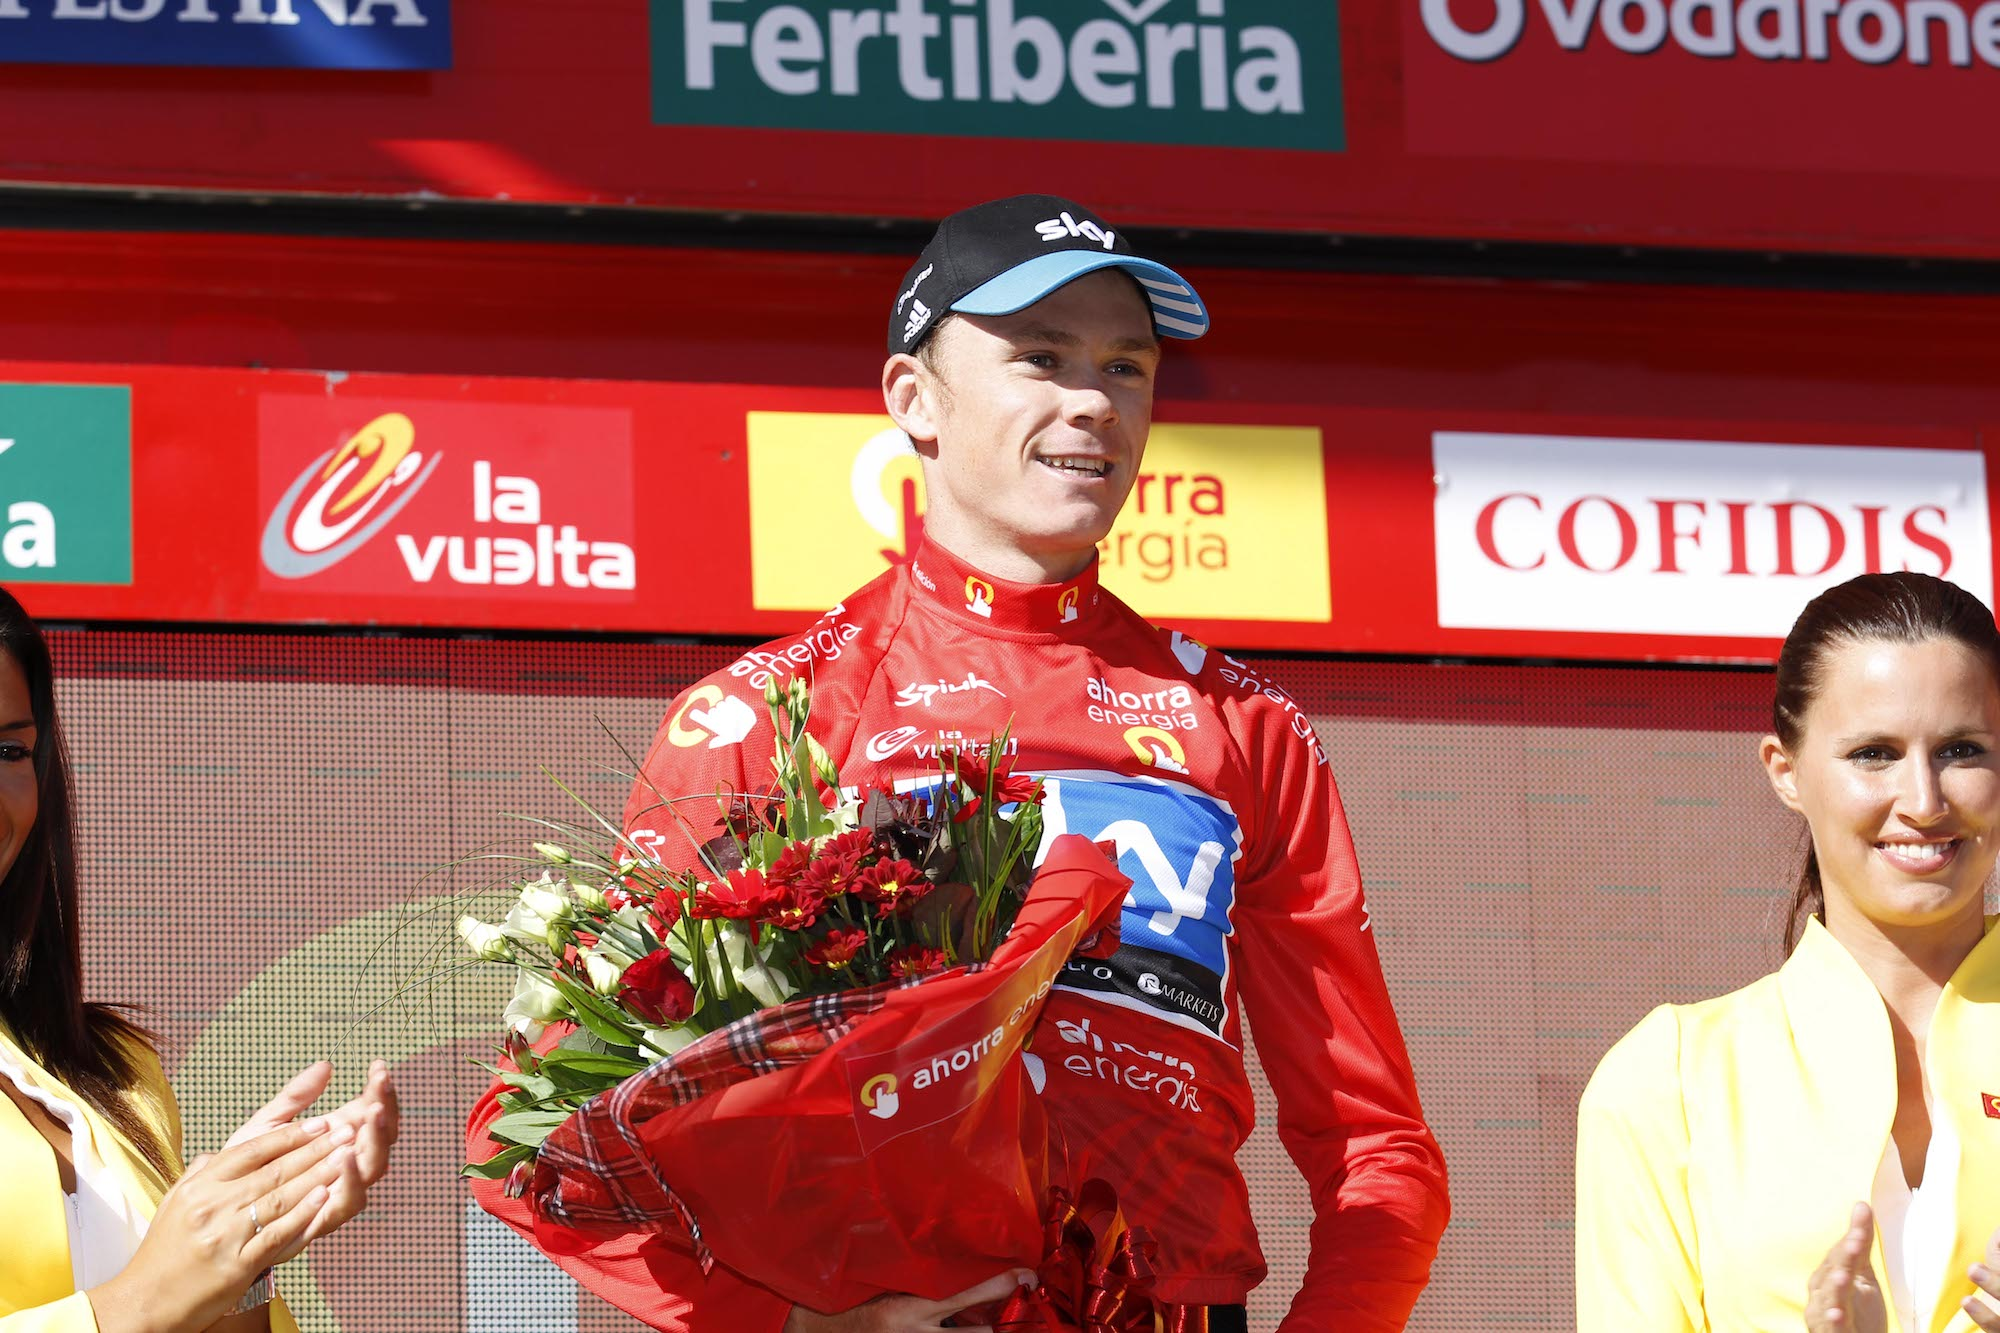 'It would have been so different had I won it back then': Chris Froome officially accepts 2011 Vuelta a España red jersey - Cycling Weekly